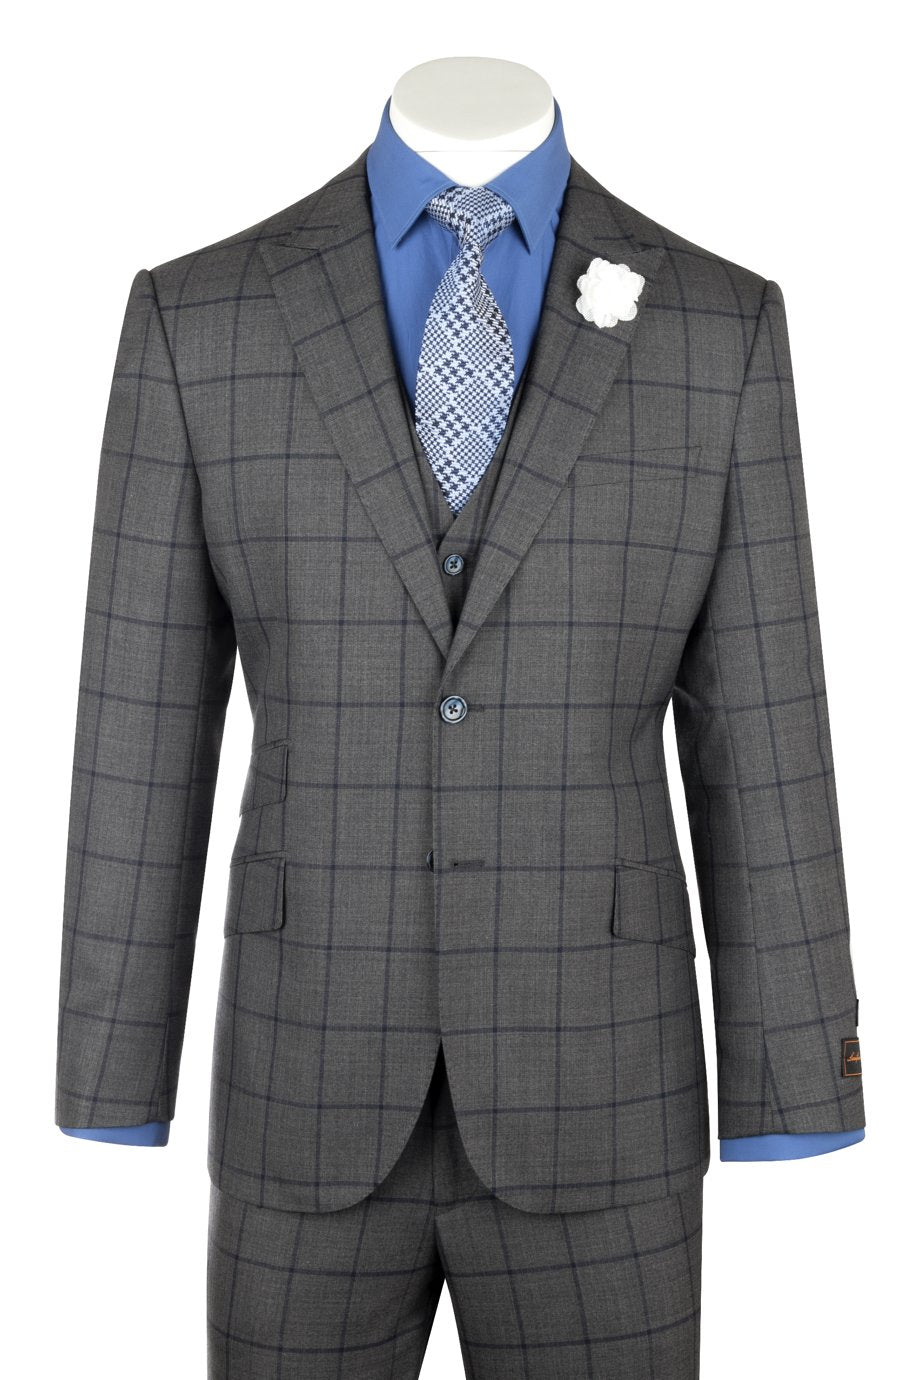 Tiglio Luxe BARBERA, Modern Fit, Dark Gray with navy windowpane, Pure Wool Suit & Vest 27556/1